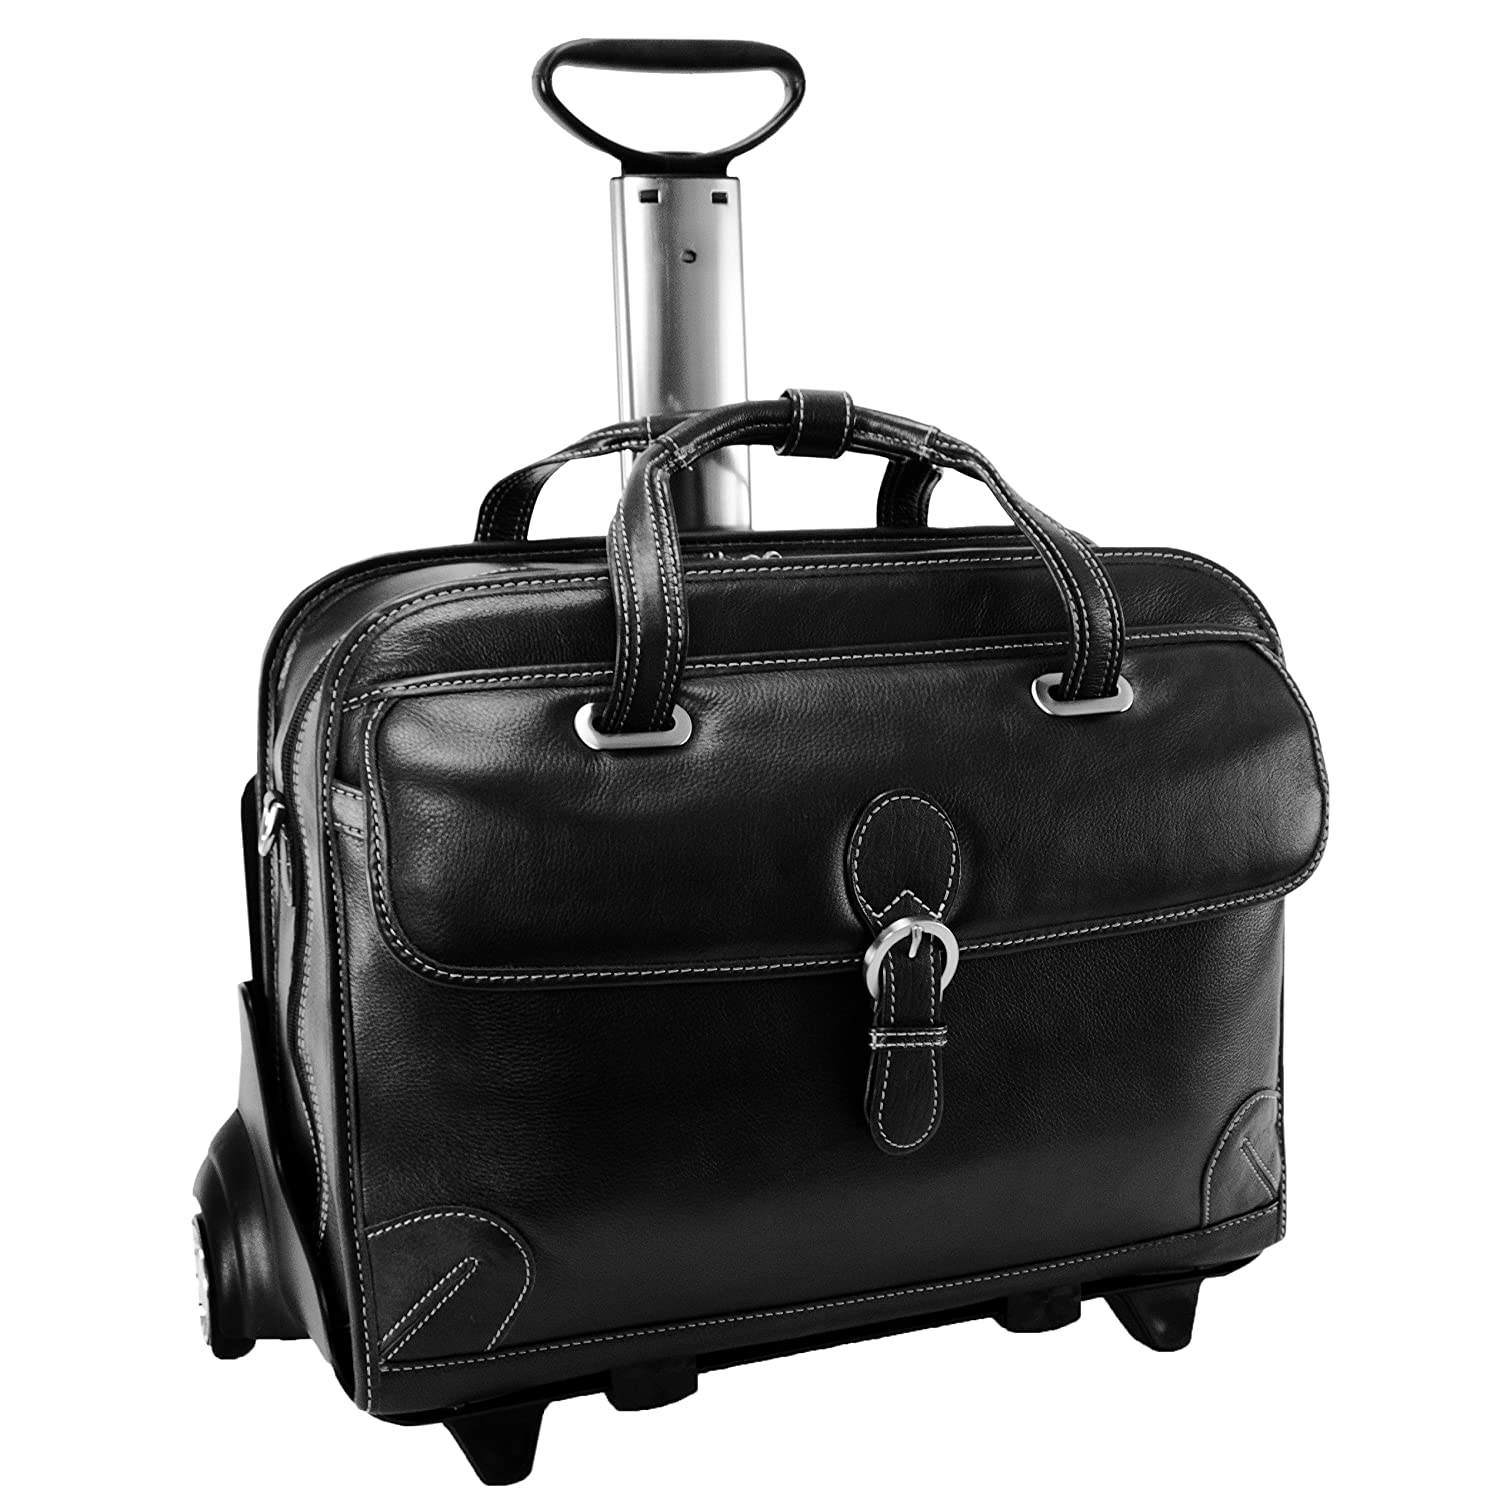 Siamod Vernazza Collection 15 Wheeled Laptop Case